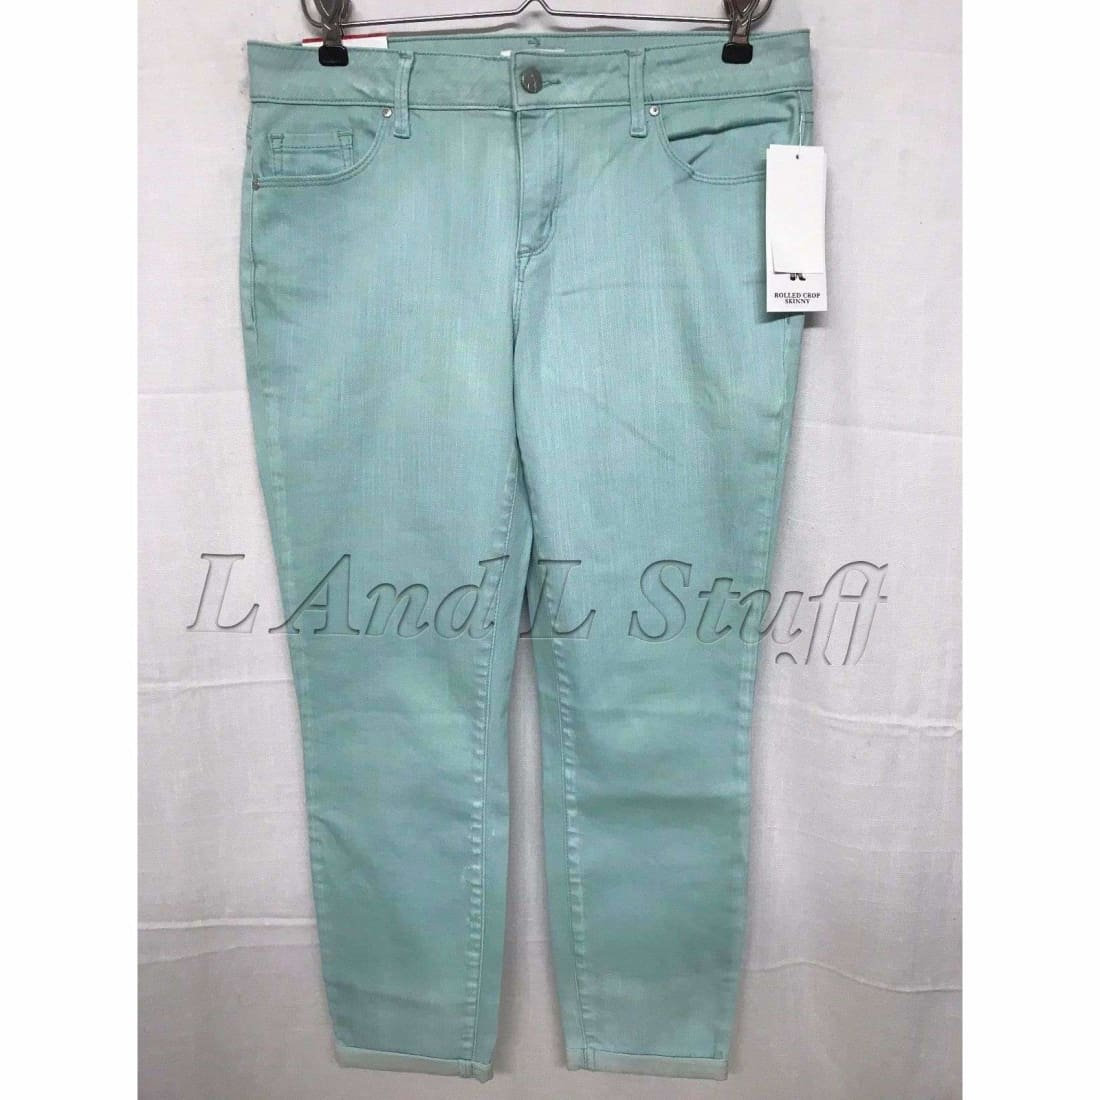 Jessica Simpson Rolled Crop Skinny Super Stretch Jeans Womens 12 / Canal Blue Jeans